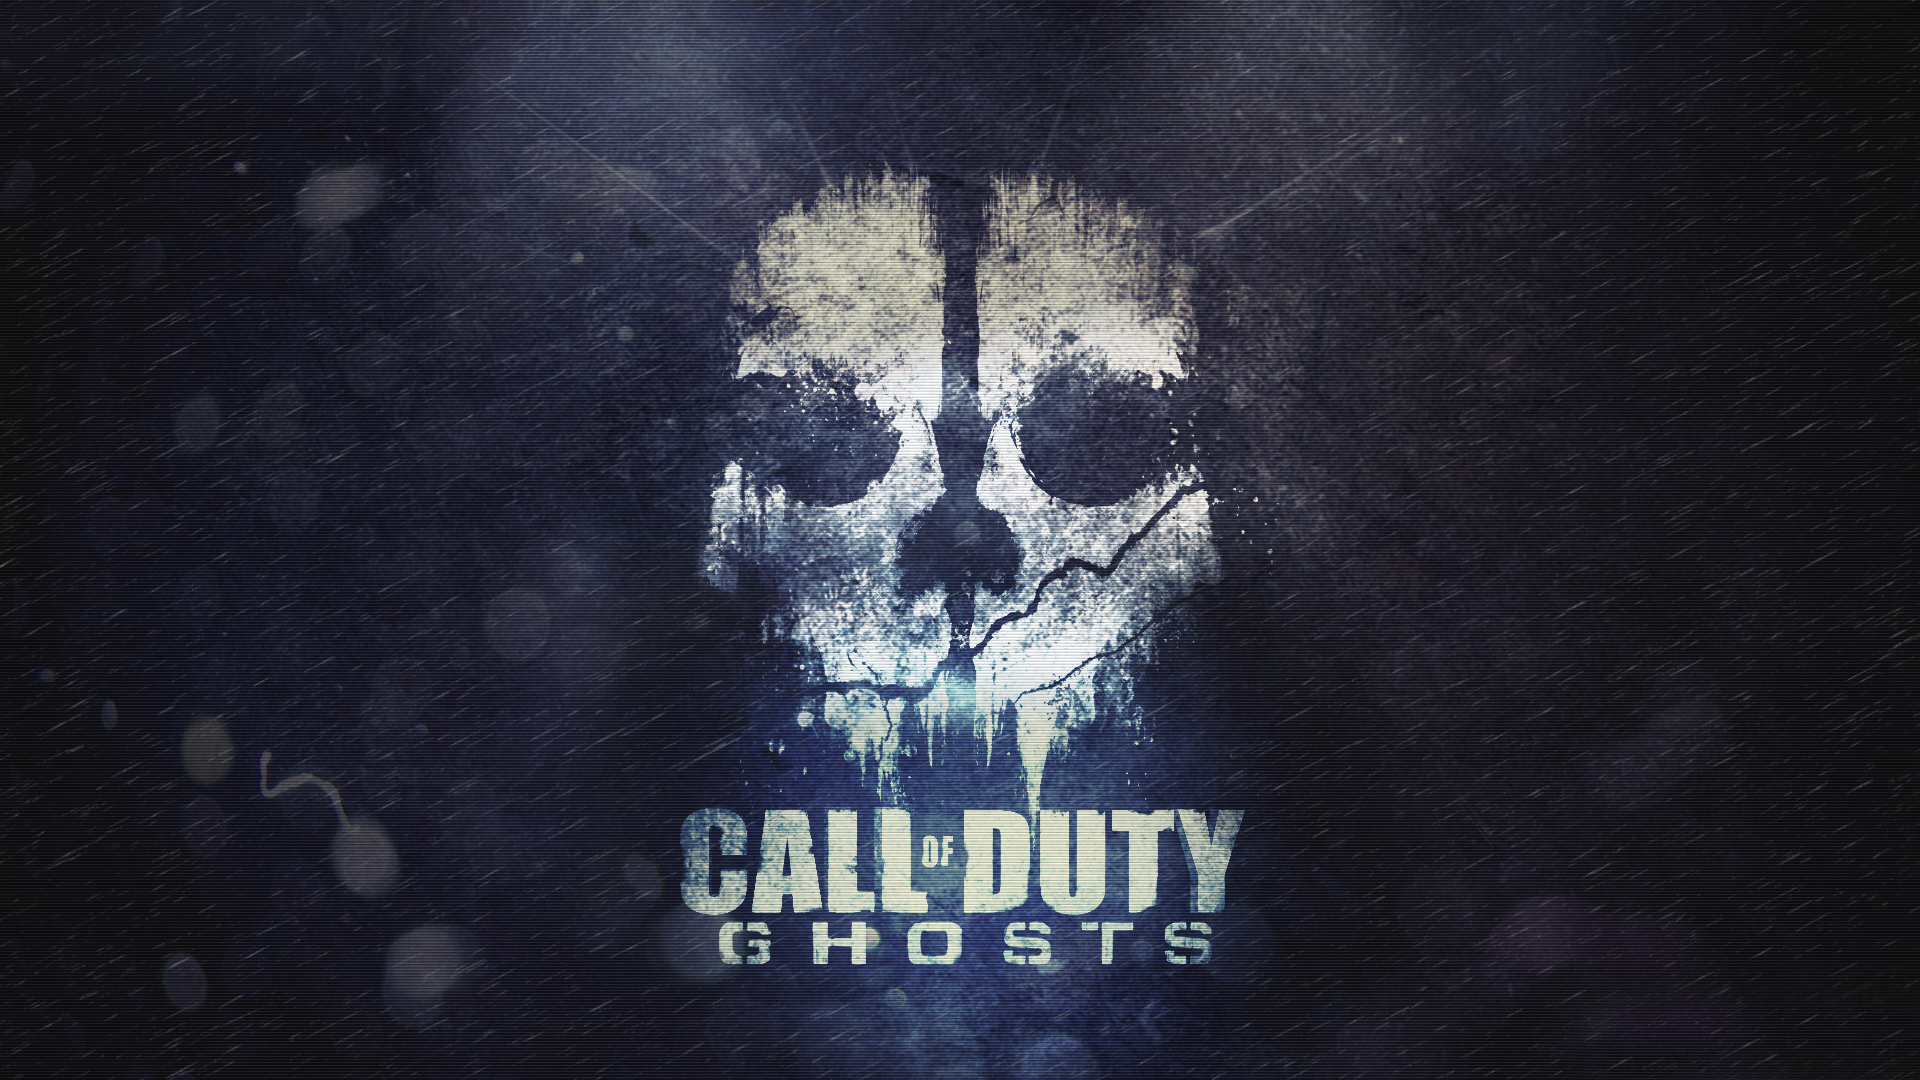 Call of Duty   Ghosts wallpaper 14814 1920x1080